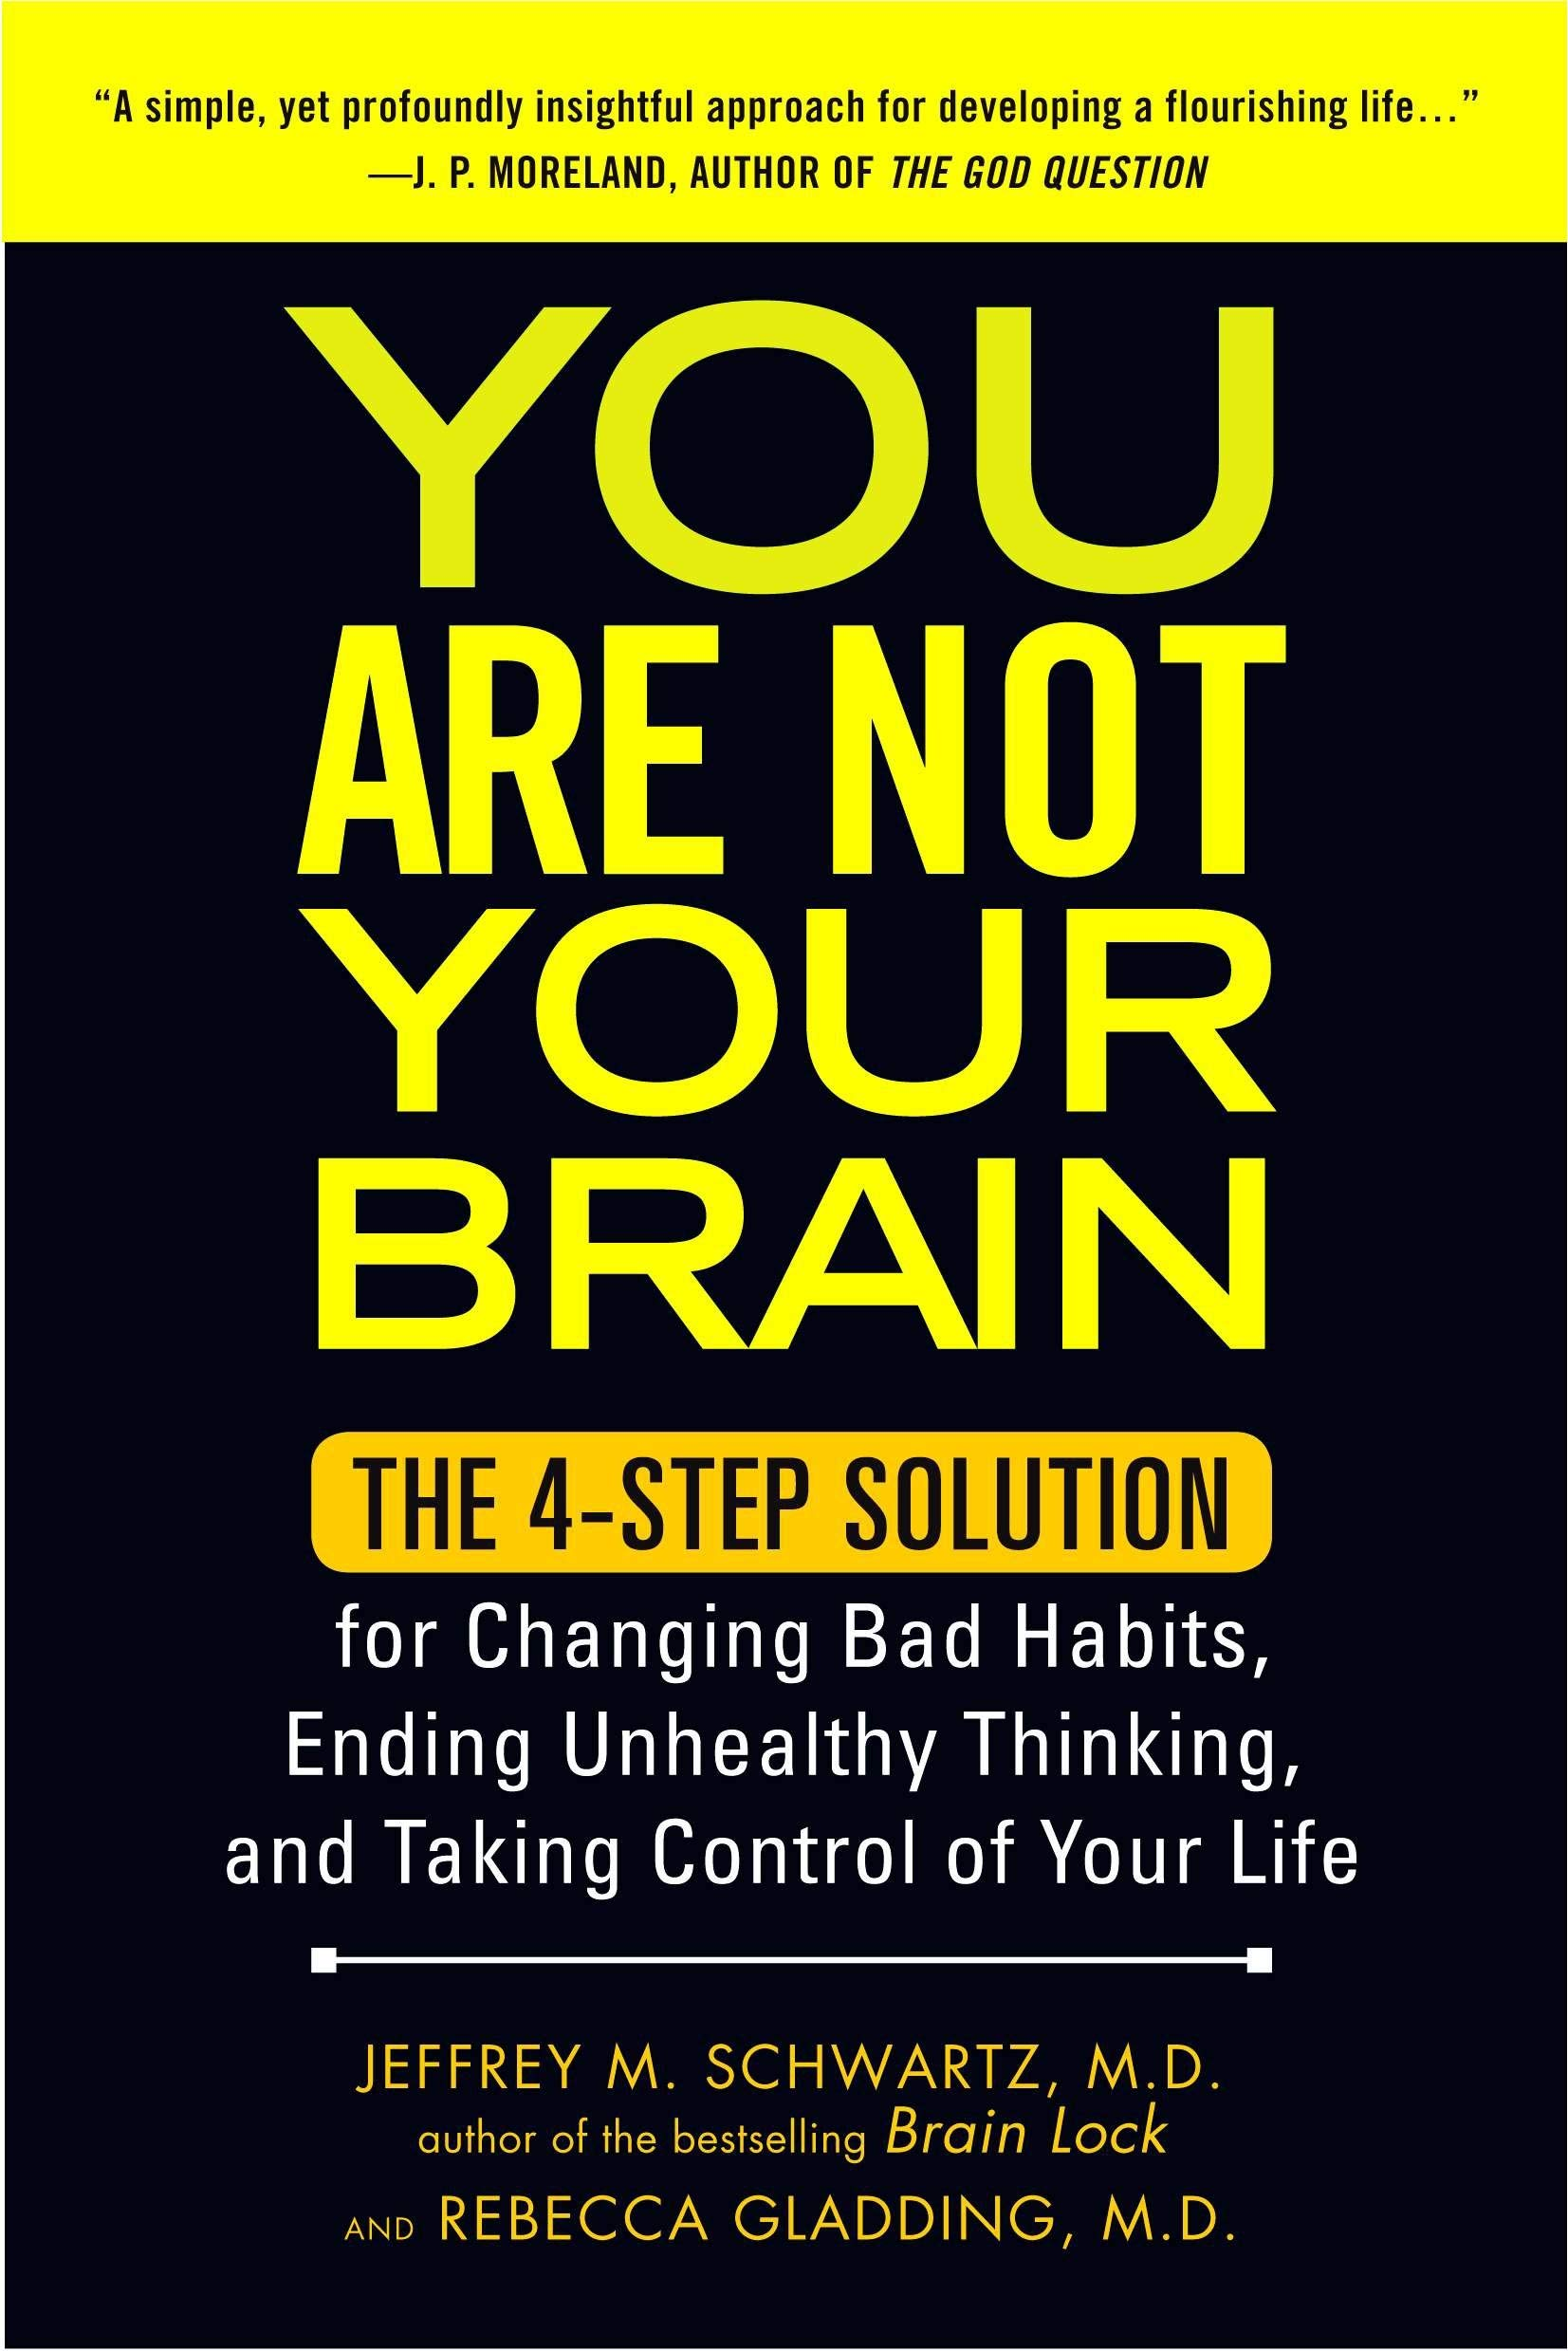 You Are Not Your Brain: The 4 Step Solution for Changing Bad Habits Dr. Jeffrey M. Schwartz, Rebecca Gladding, notes by Kingston S Lim